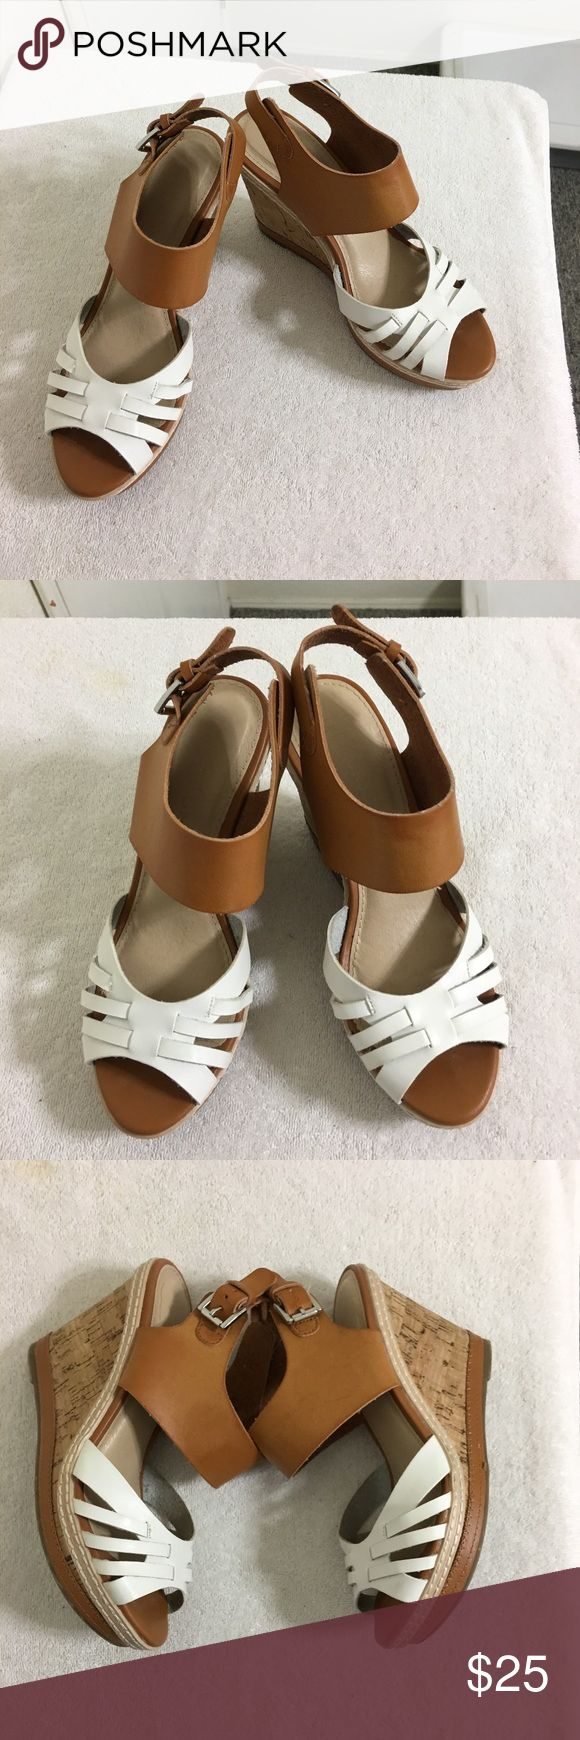 "Versona White & Tan Wedge Sandals Cork Heels 7 Super cute & versatile Versona White & Tan Wedge Sandals.  3"" Heel, 1"" Platform.  Used in very good condition, only worn a few times (Reposh due to heel is just too high for me these days).  These could go with just about anything! Versona Shoes Wedges"